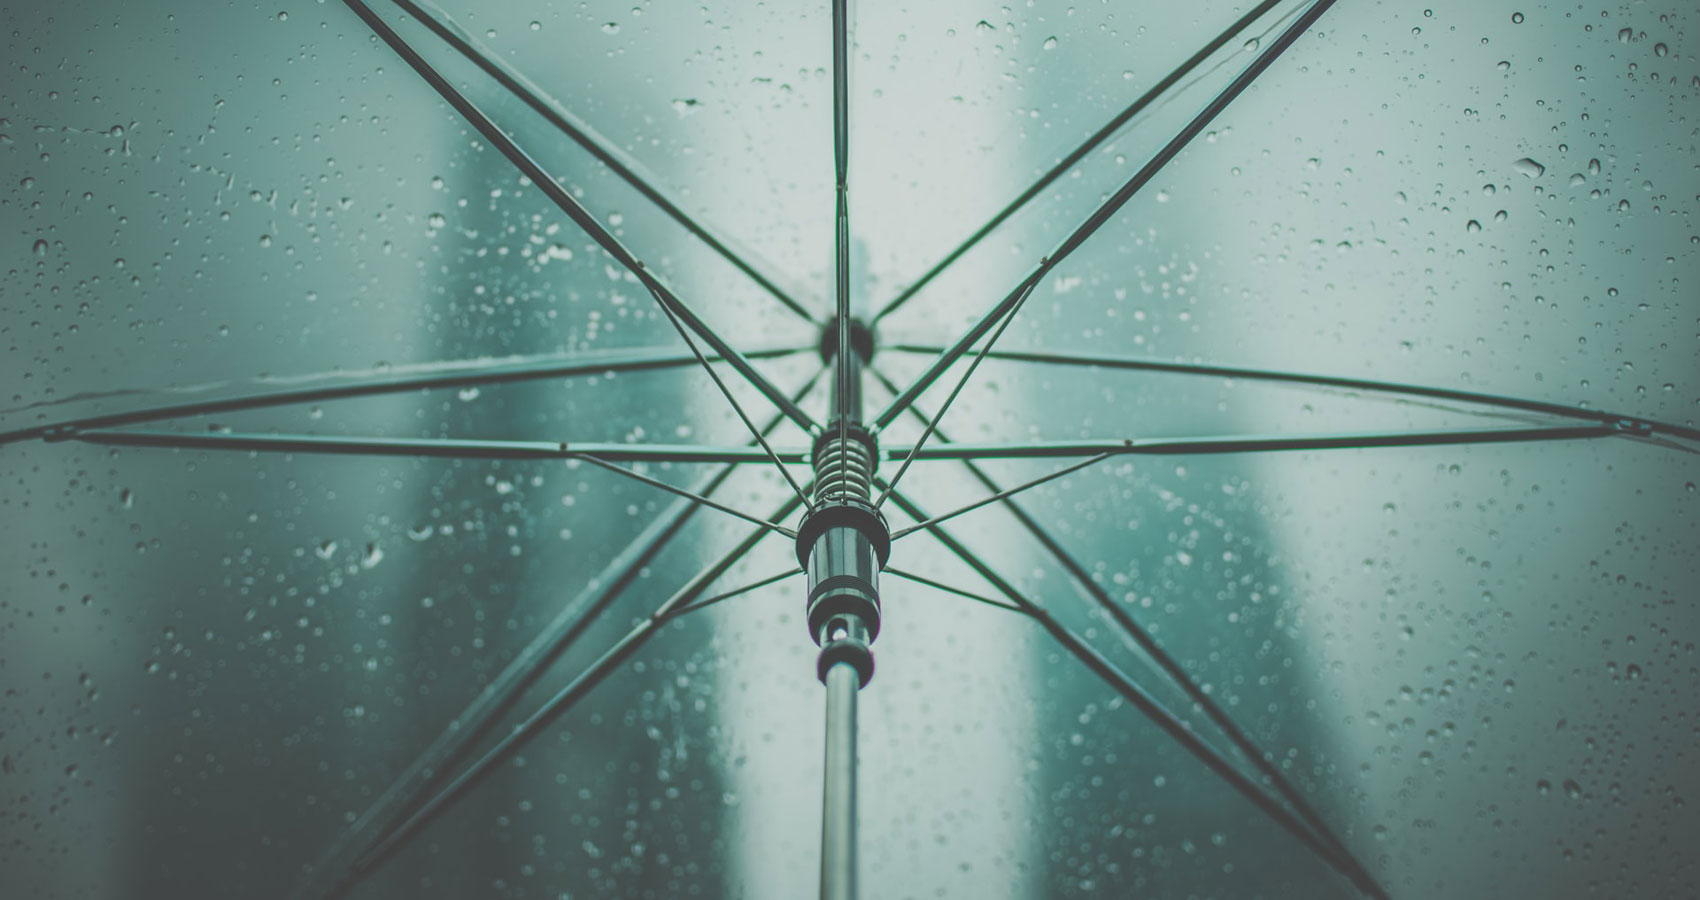 A Homeland of A Size of Umbrella, poetry by Umid Najjari at Spillwords.com